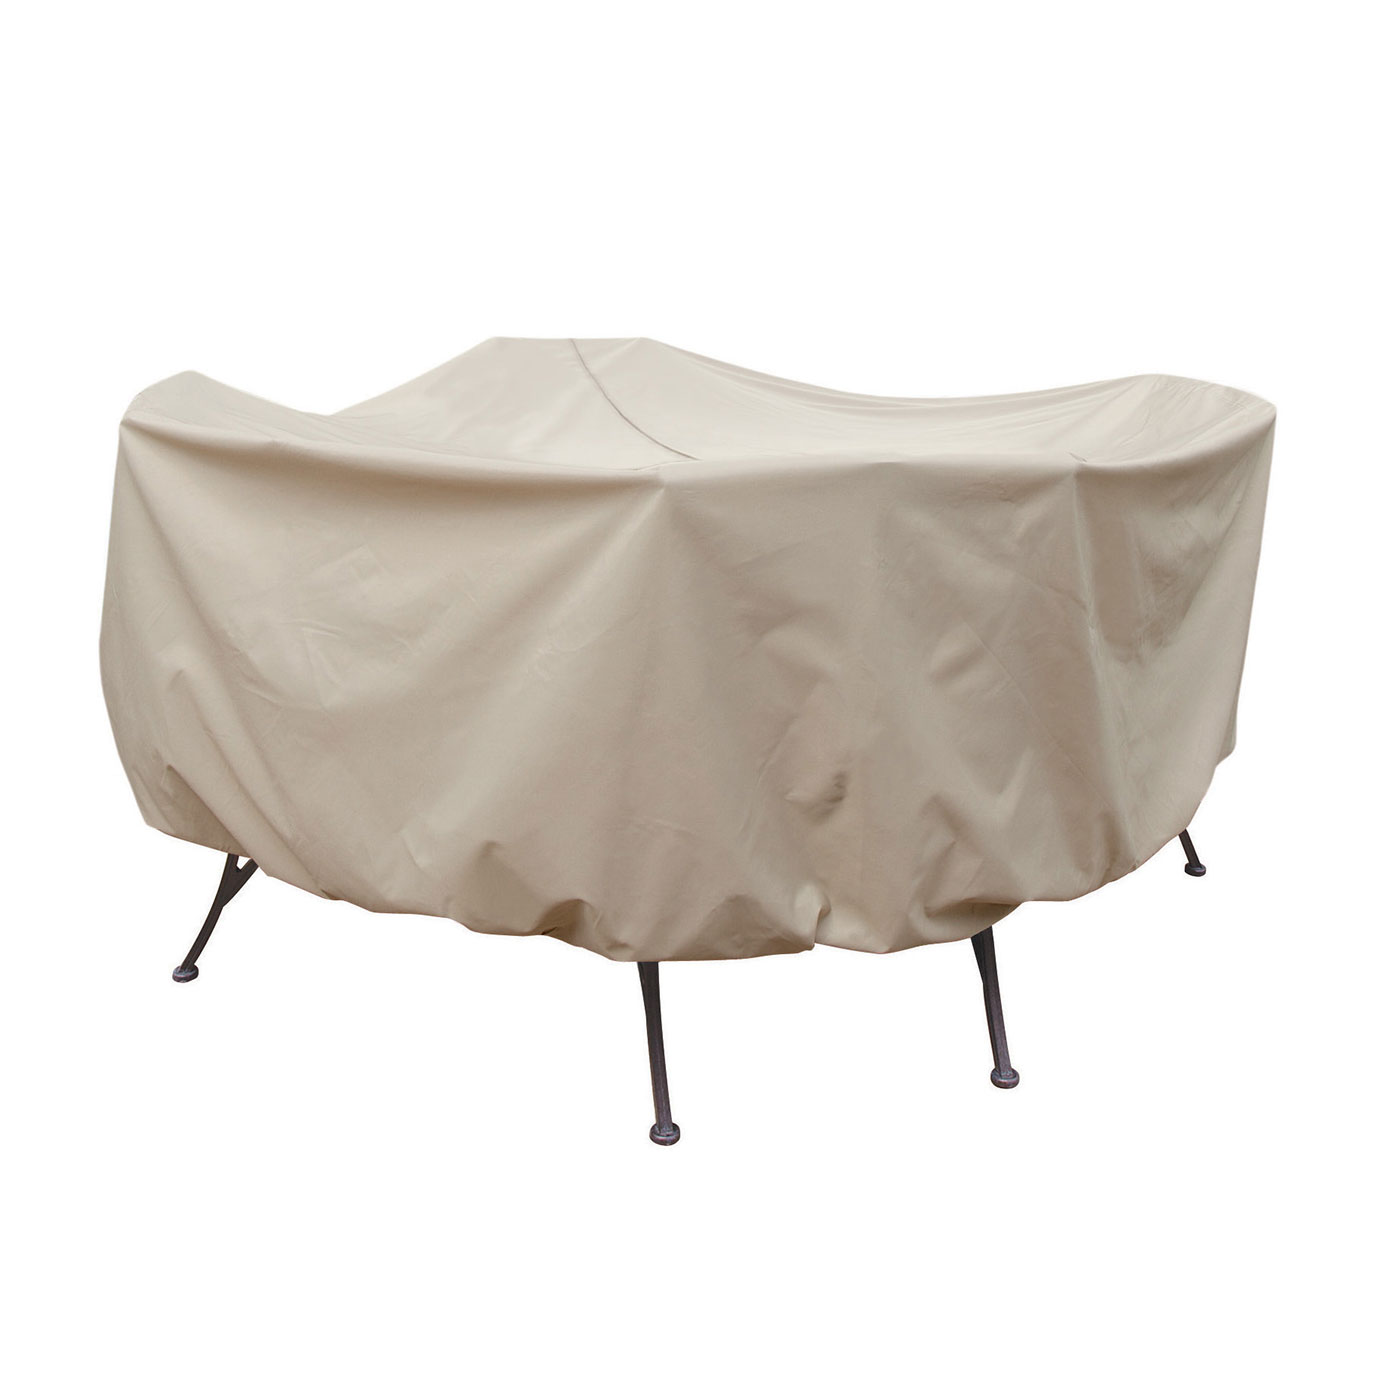 Table Cover With Umbrella Hole Patio Set Cover - 54 round patio table